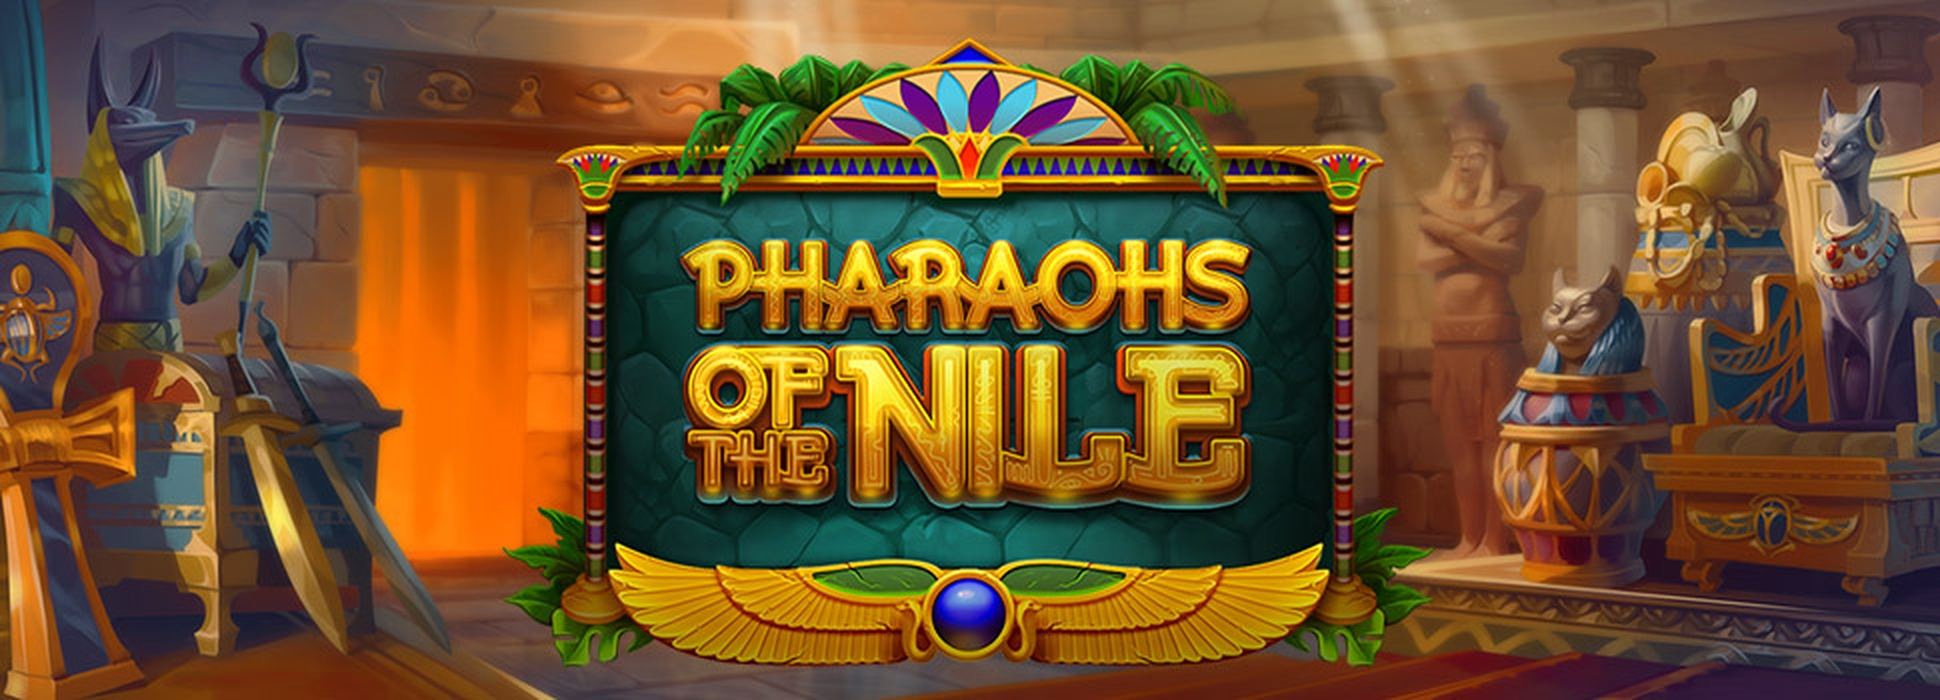 The Pharaons of the Nile Online Slot Demo Game by Mobilots